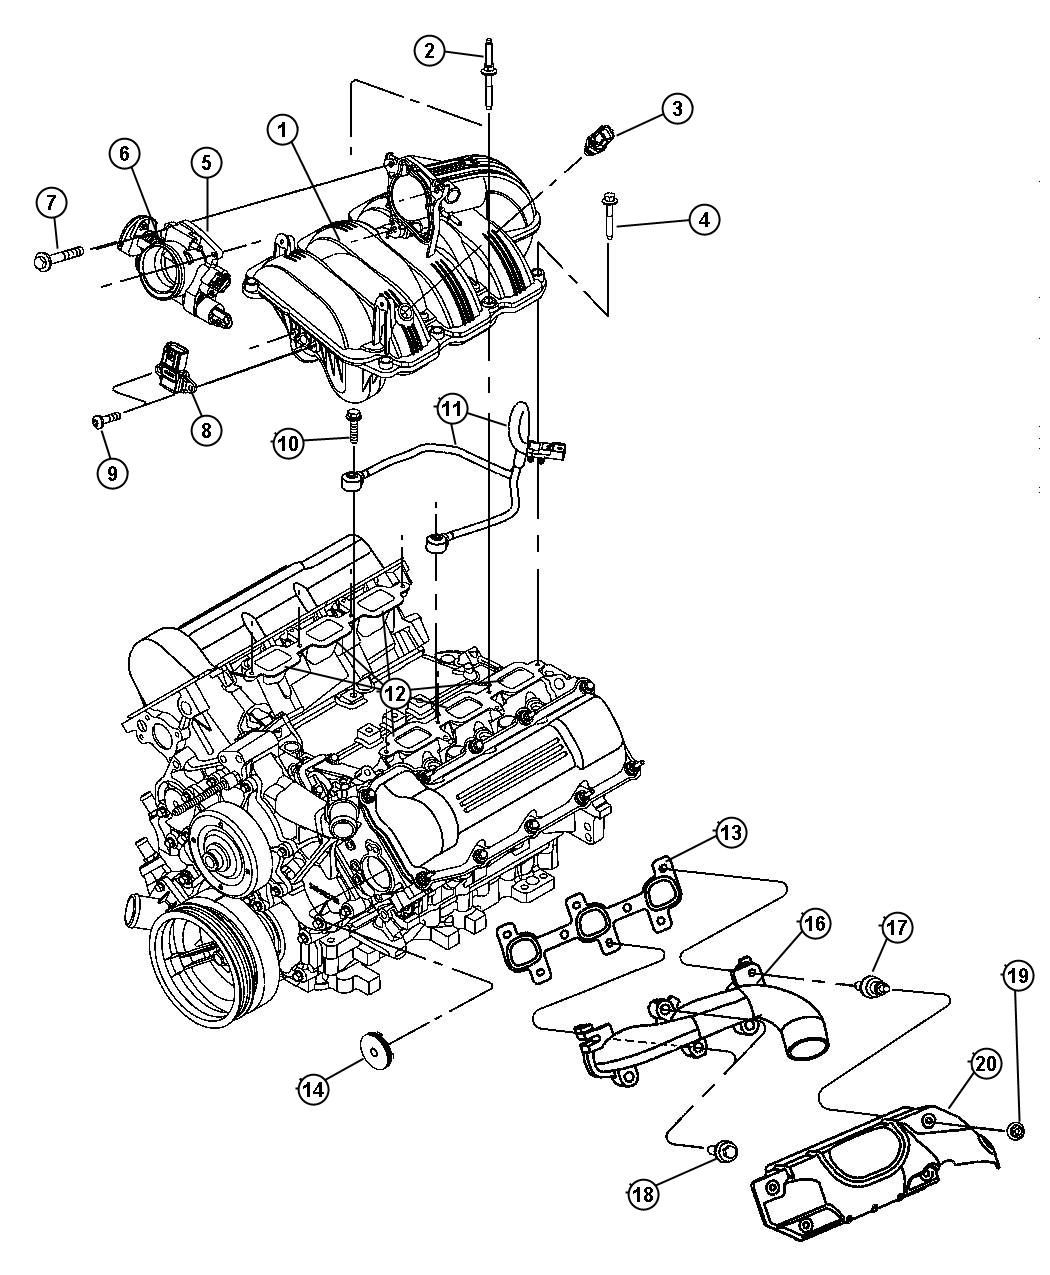 2002 jeep liberty parts diagram rv wiring diagrams search dodge dakota engine get free image